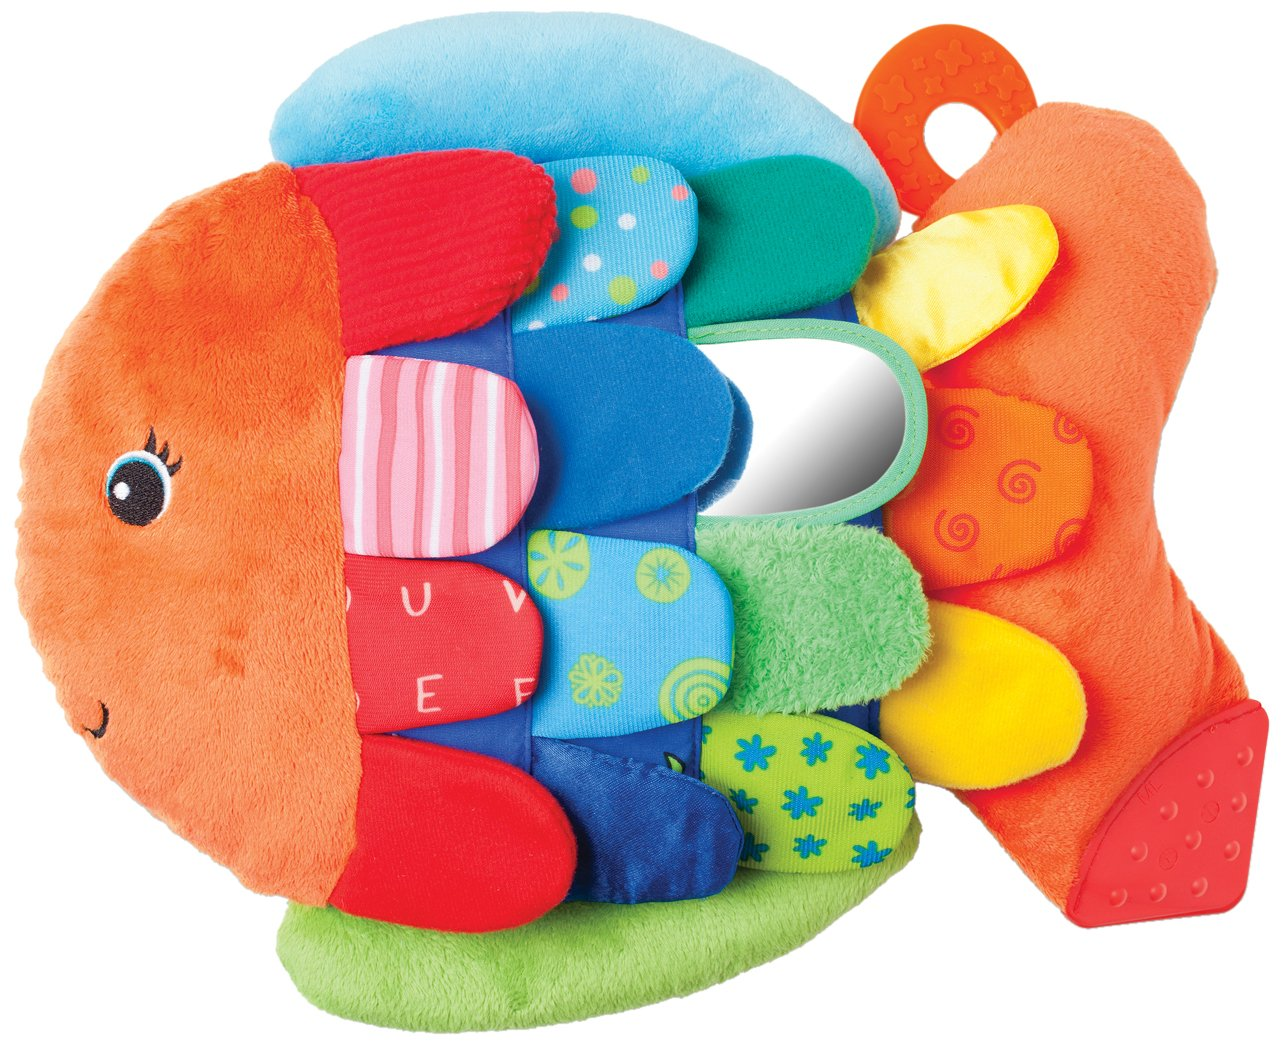 Best Baby Gifts: Sensory Fish